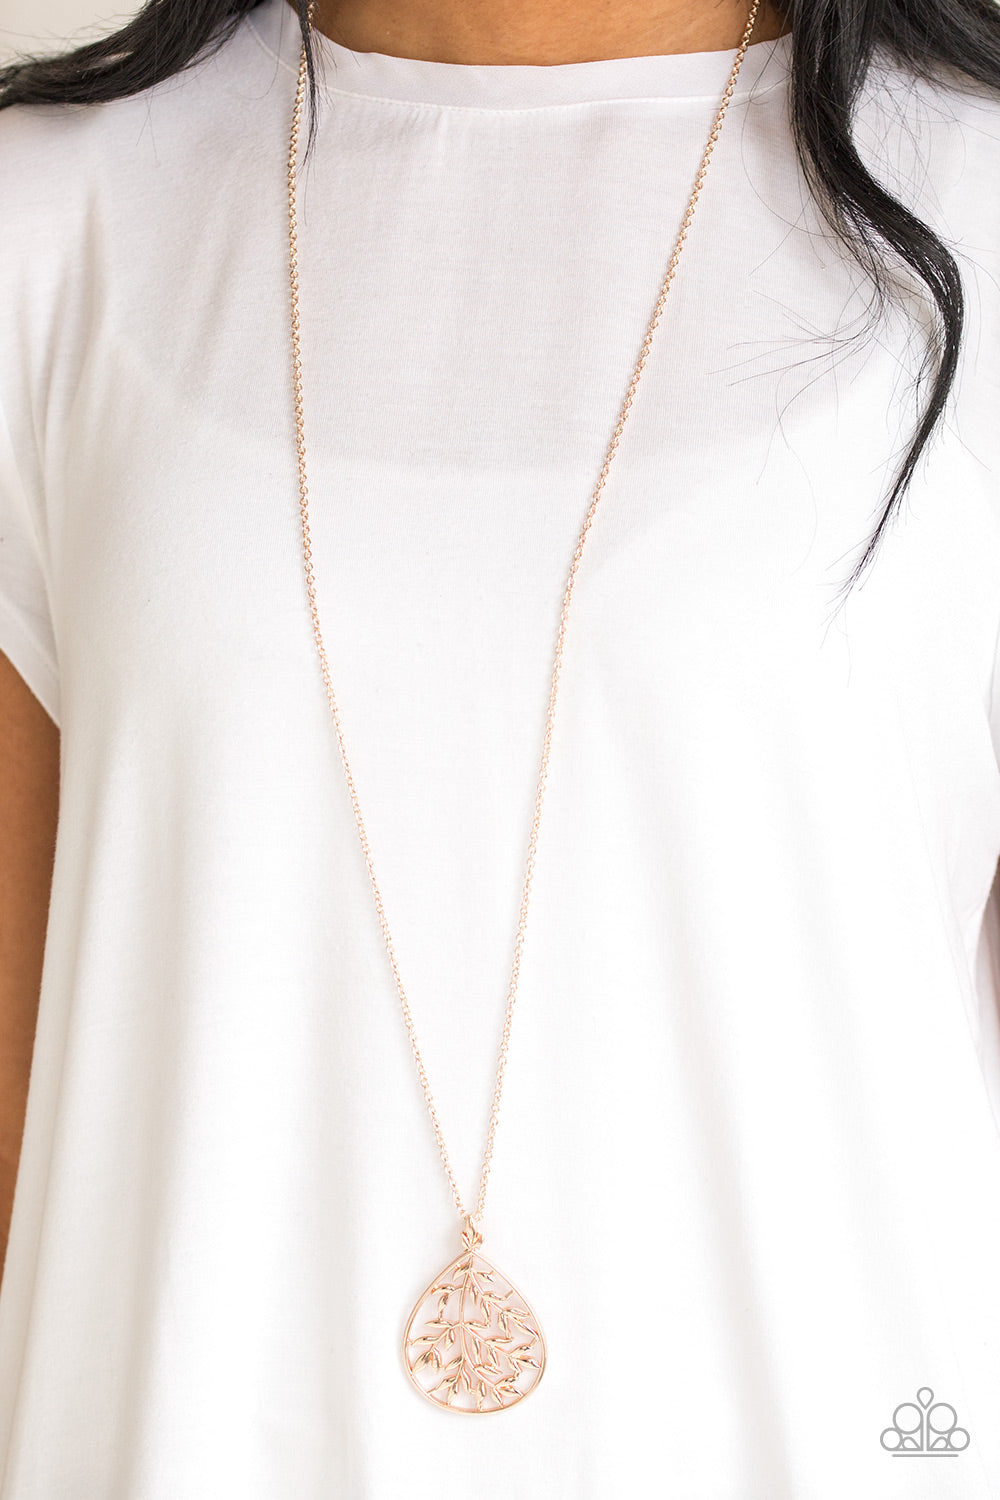 BOUGH Down - Rose Gold Paparazzi Necklace - Pink Dragon Jewels